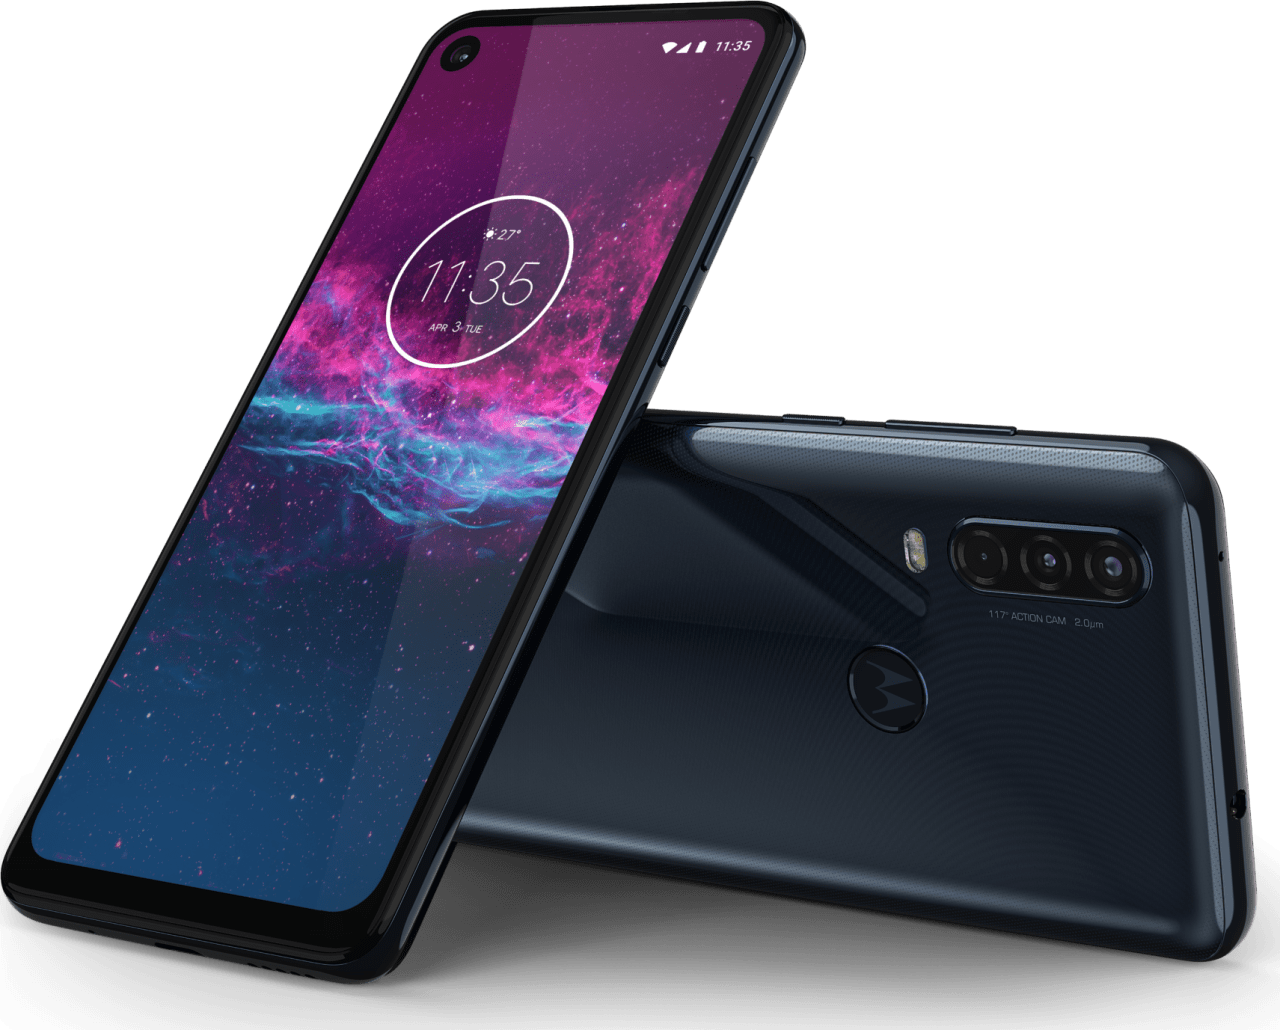 Denim Blau Motorola One Action (2019) 128GB.3